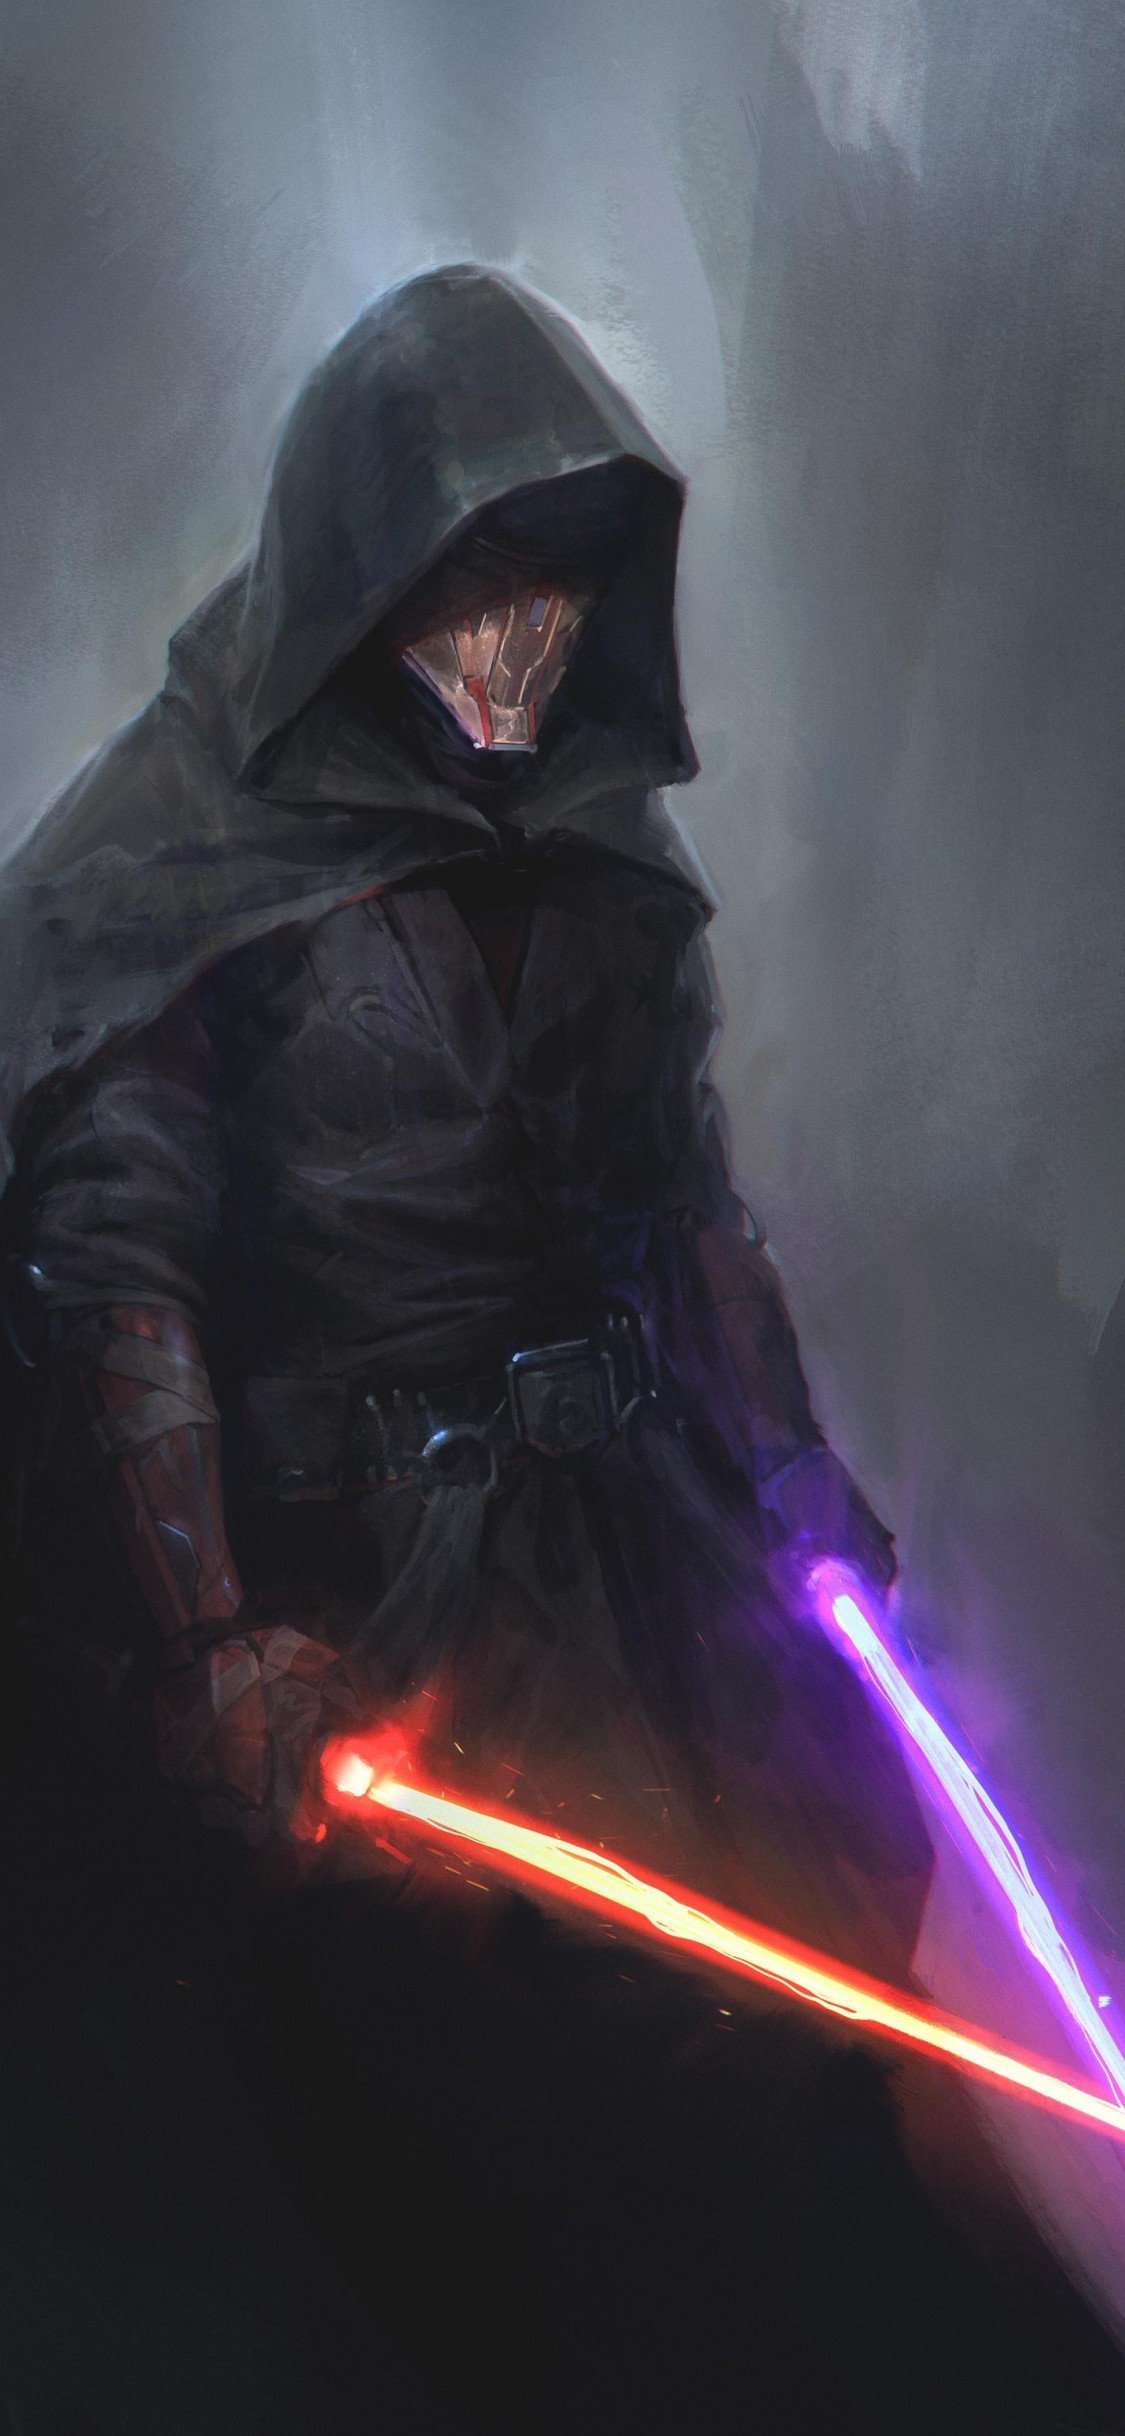 141 1413883 download darth maul star wars 8 darth more